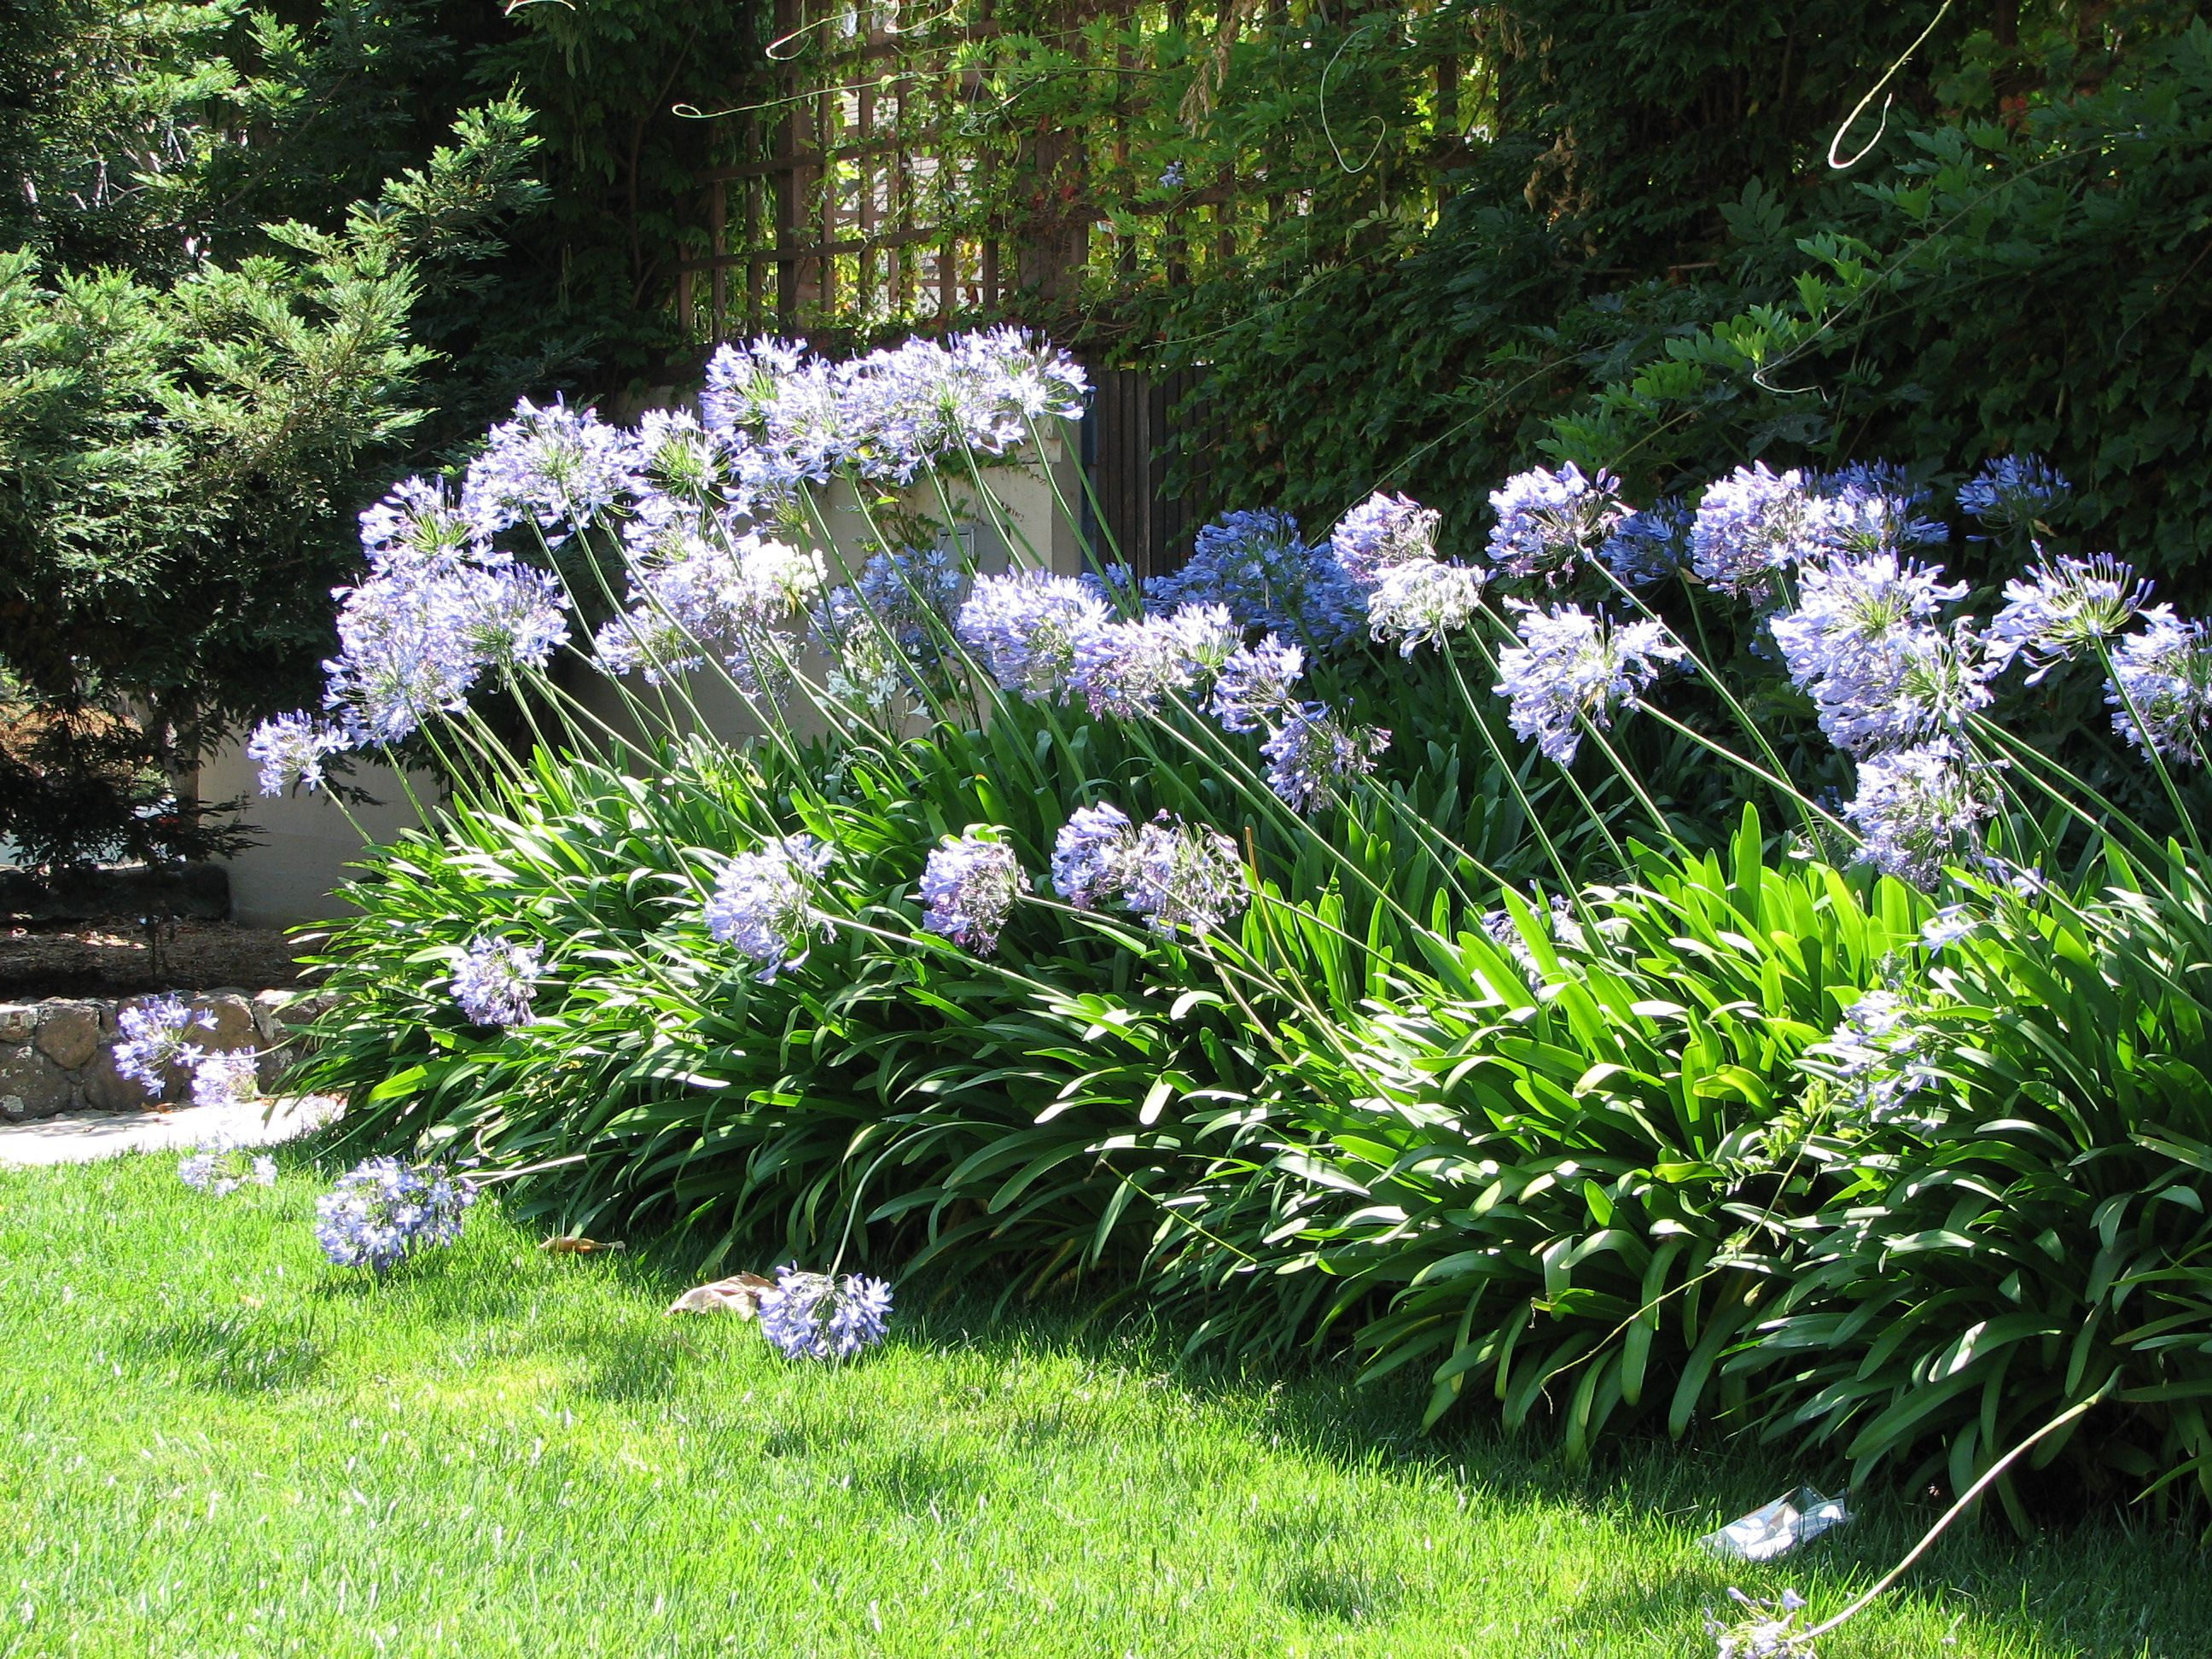 How To Grow Agapanthus In Pots For Better Protection Tuin Grassen Border Tuin Tuin